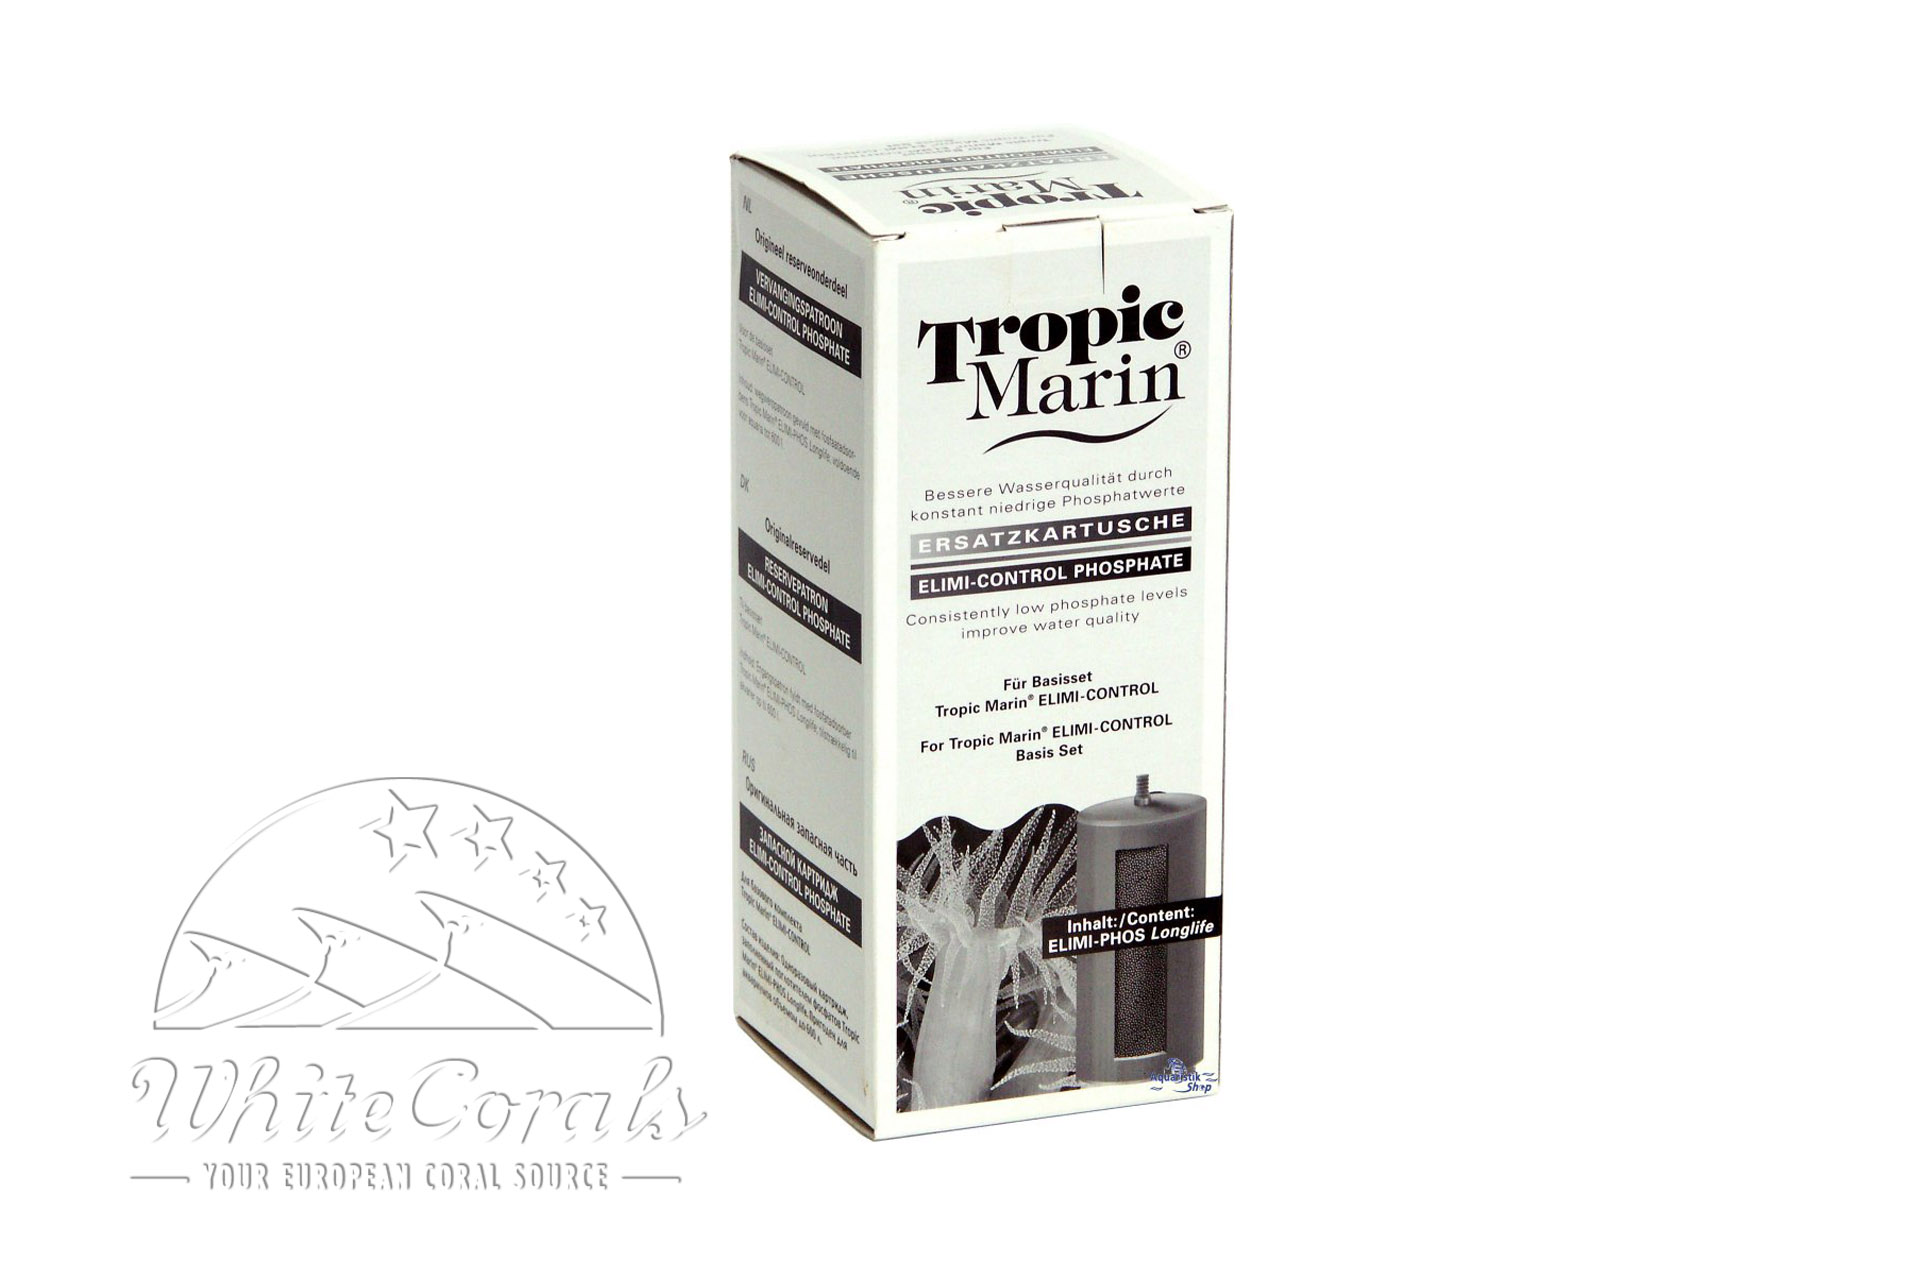 Tropic Marin ELIMI-CONTROL PHOSPHATE Replacement Cartridge